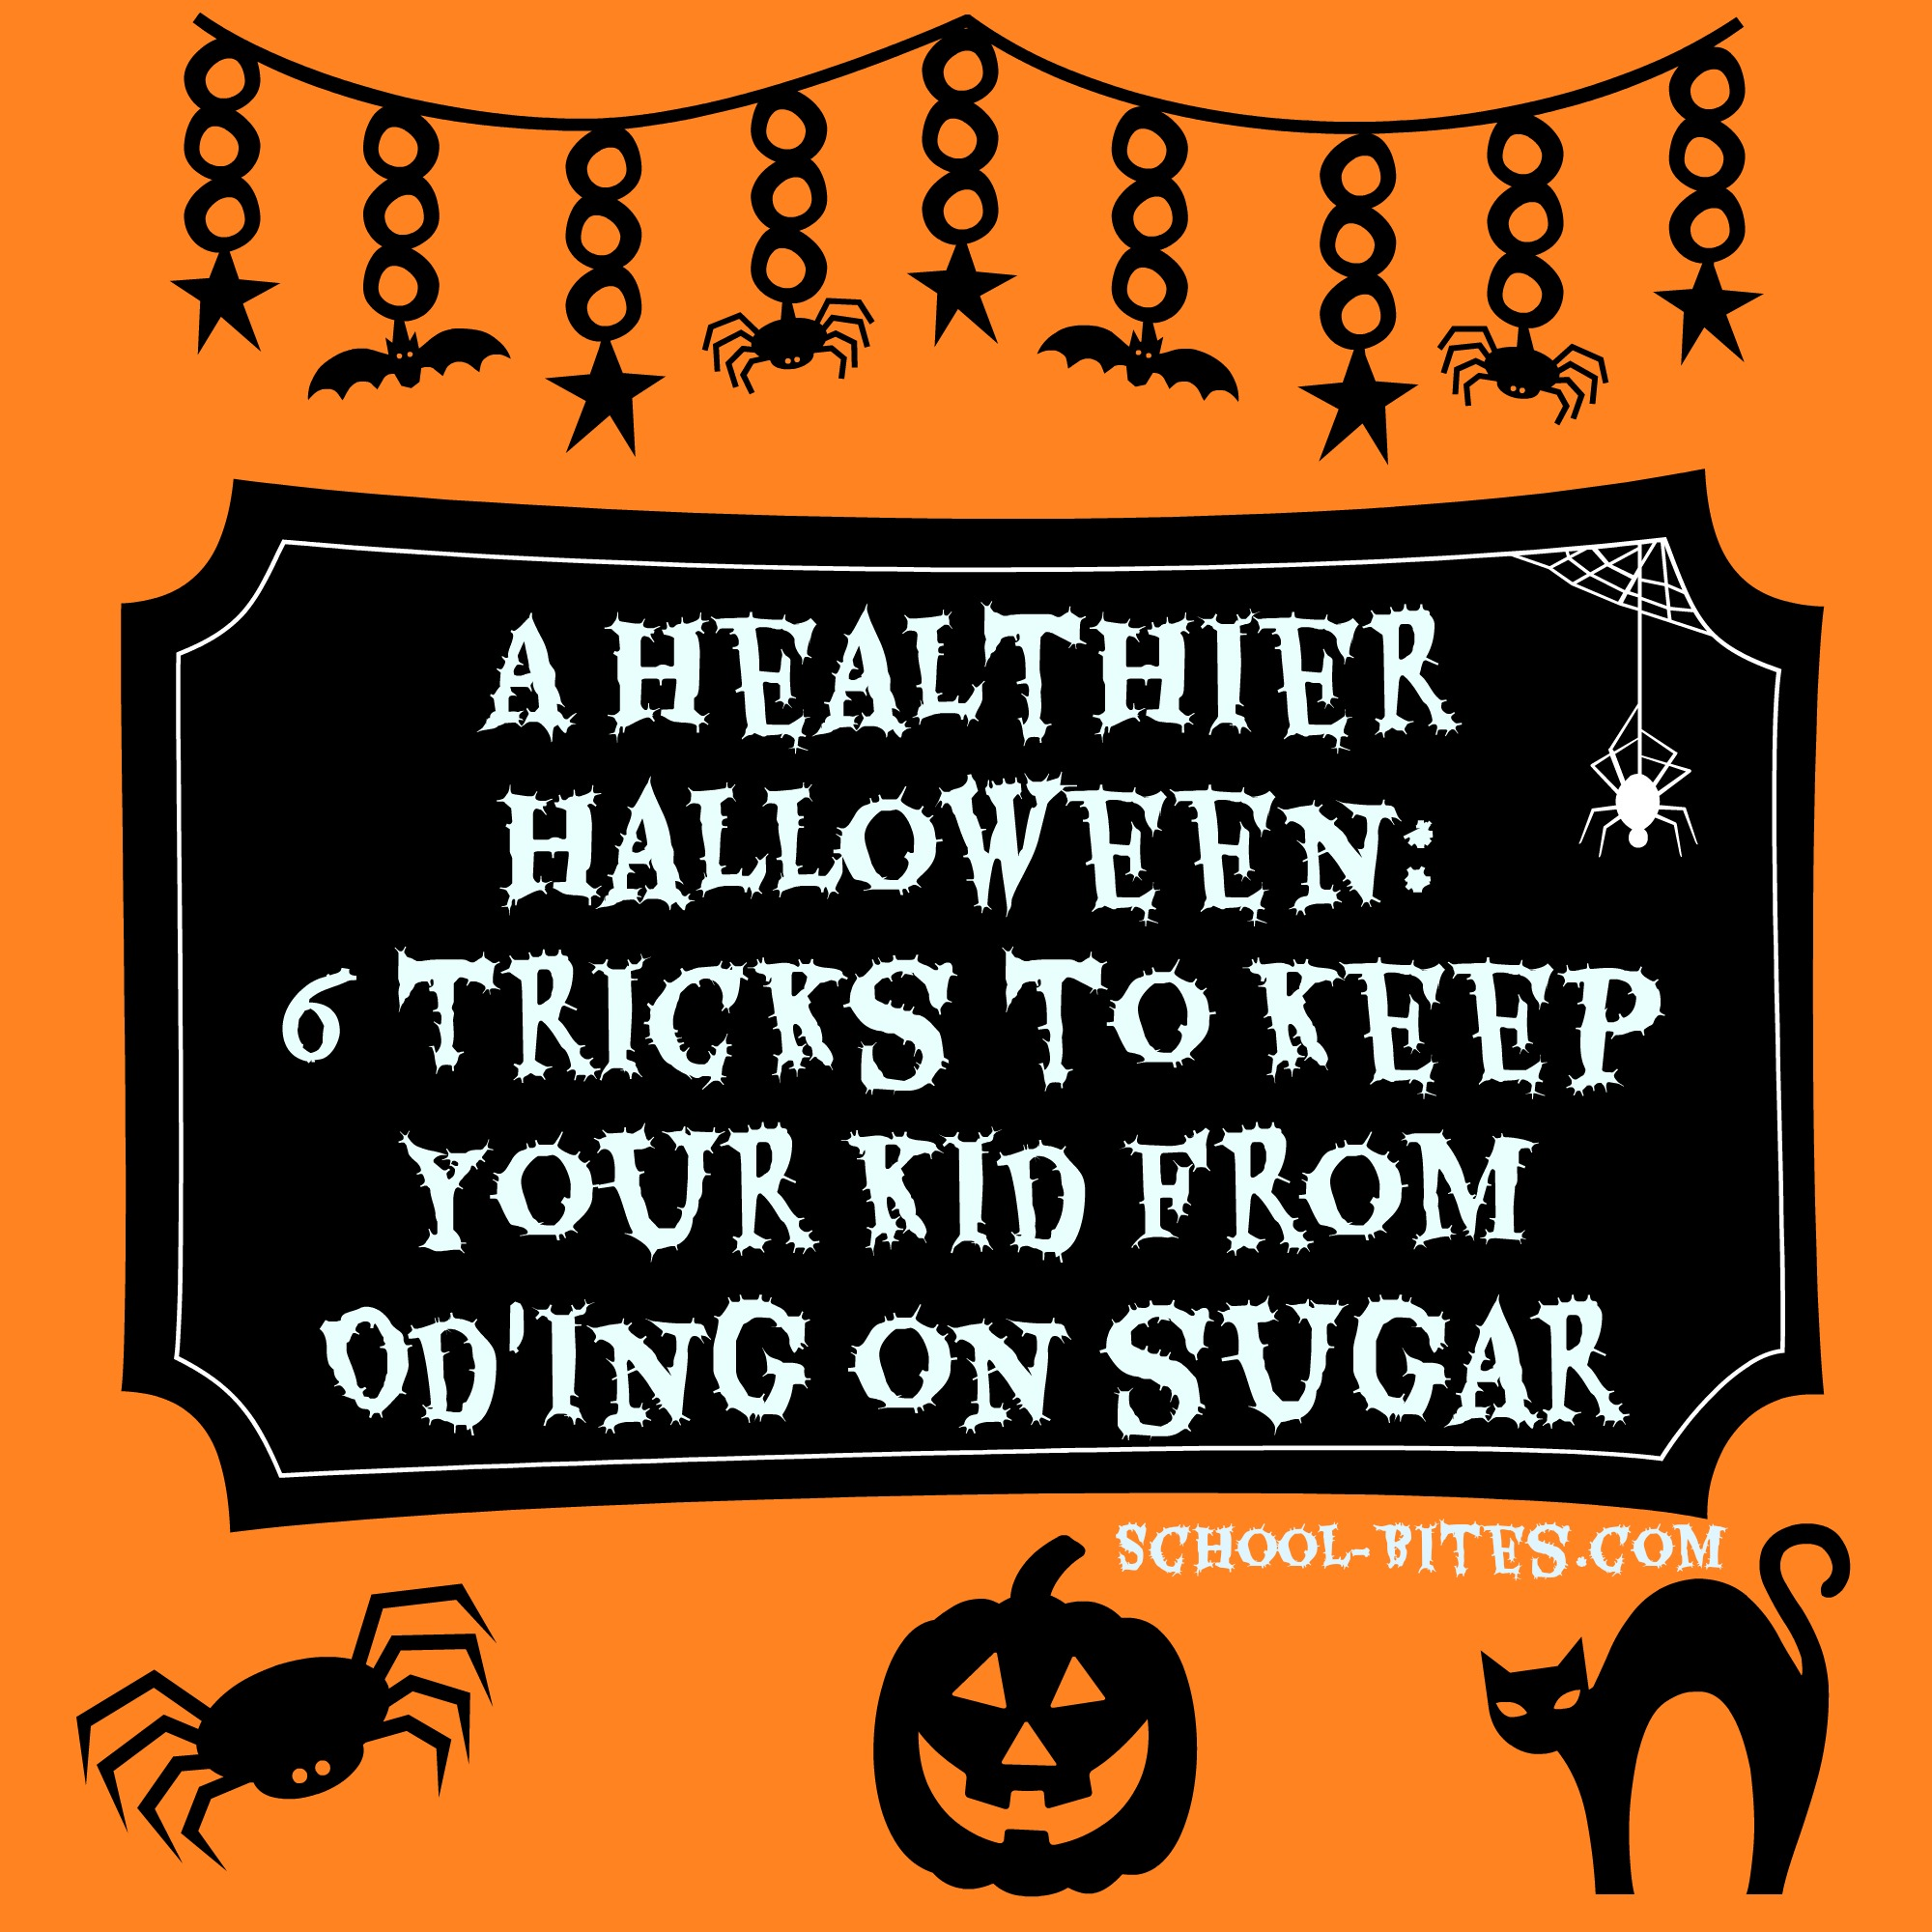 A Healthier Halloween 6 Tricks to Keep Your Kid from OD ing on